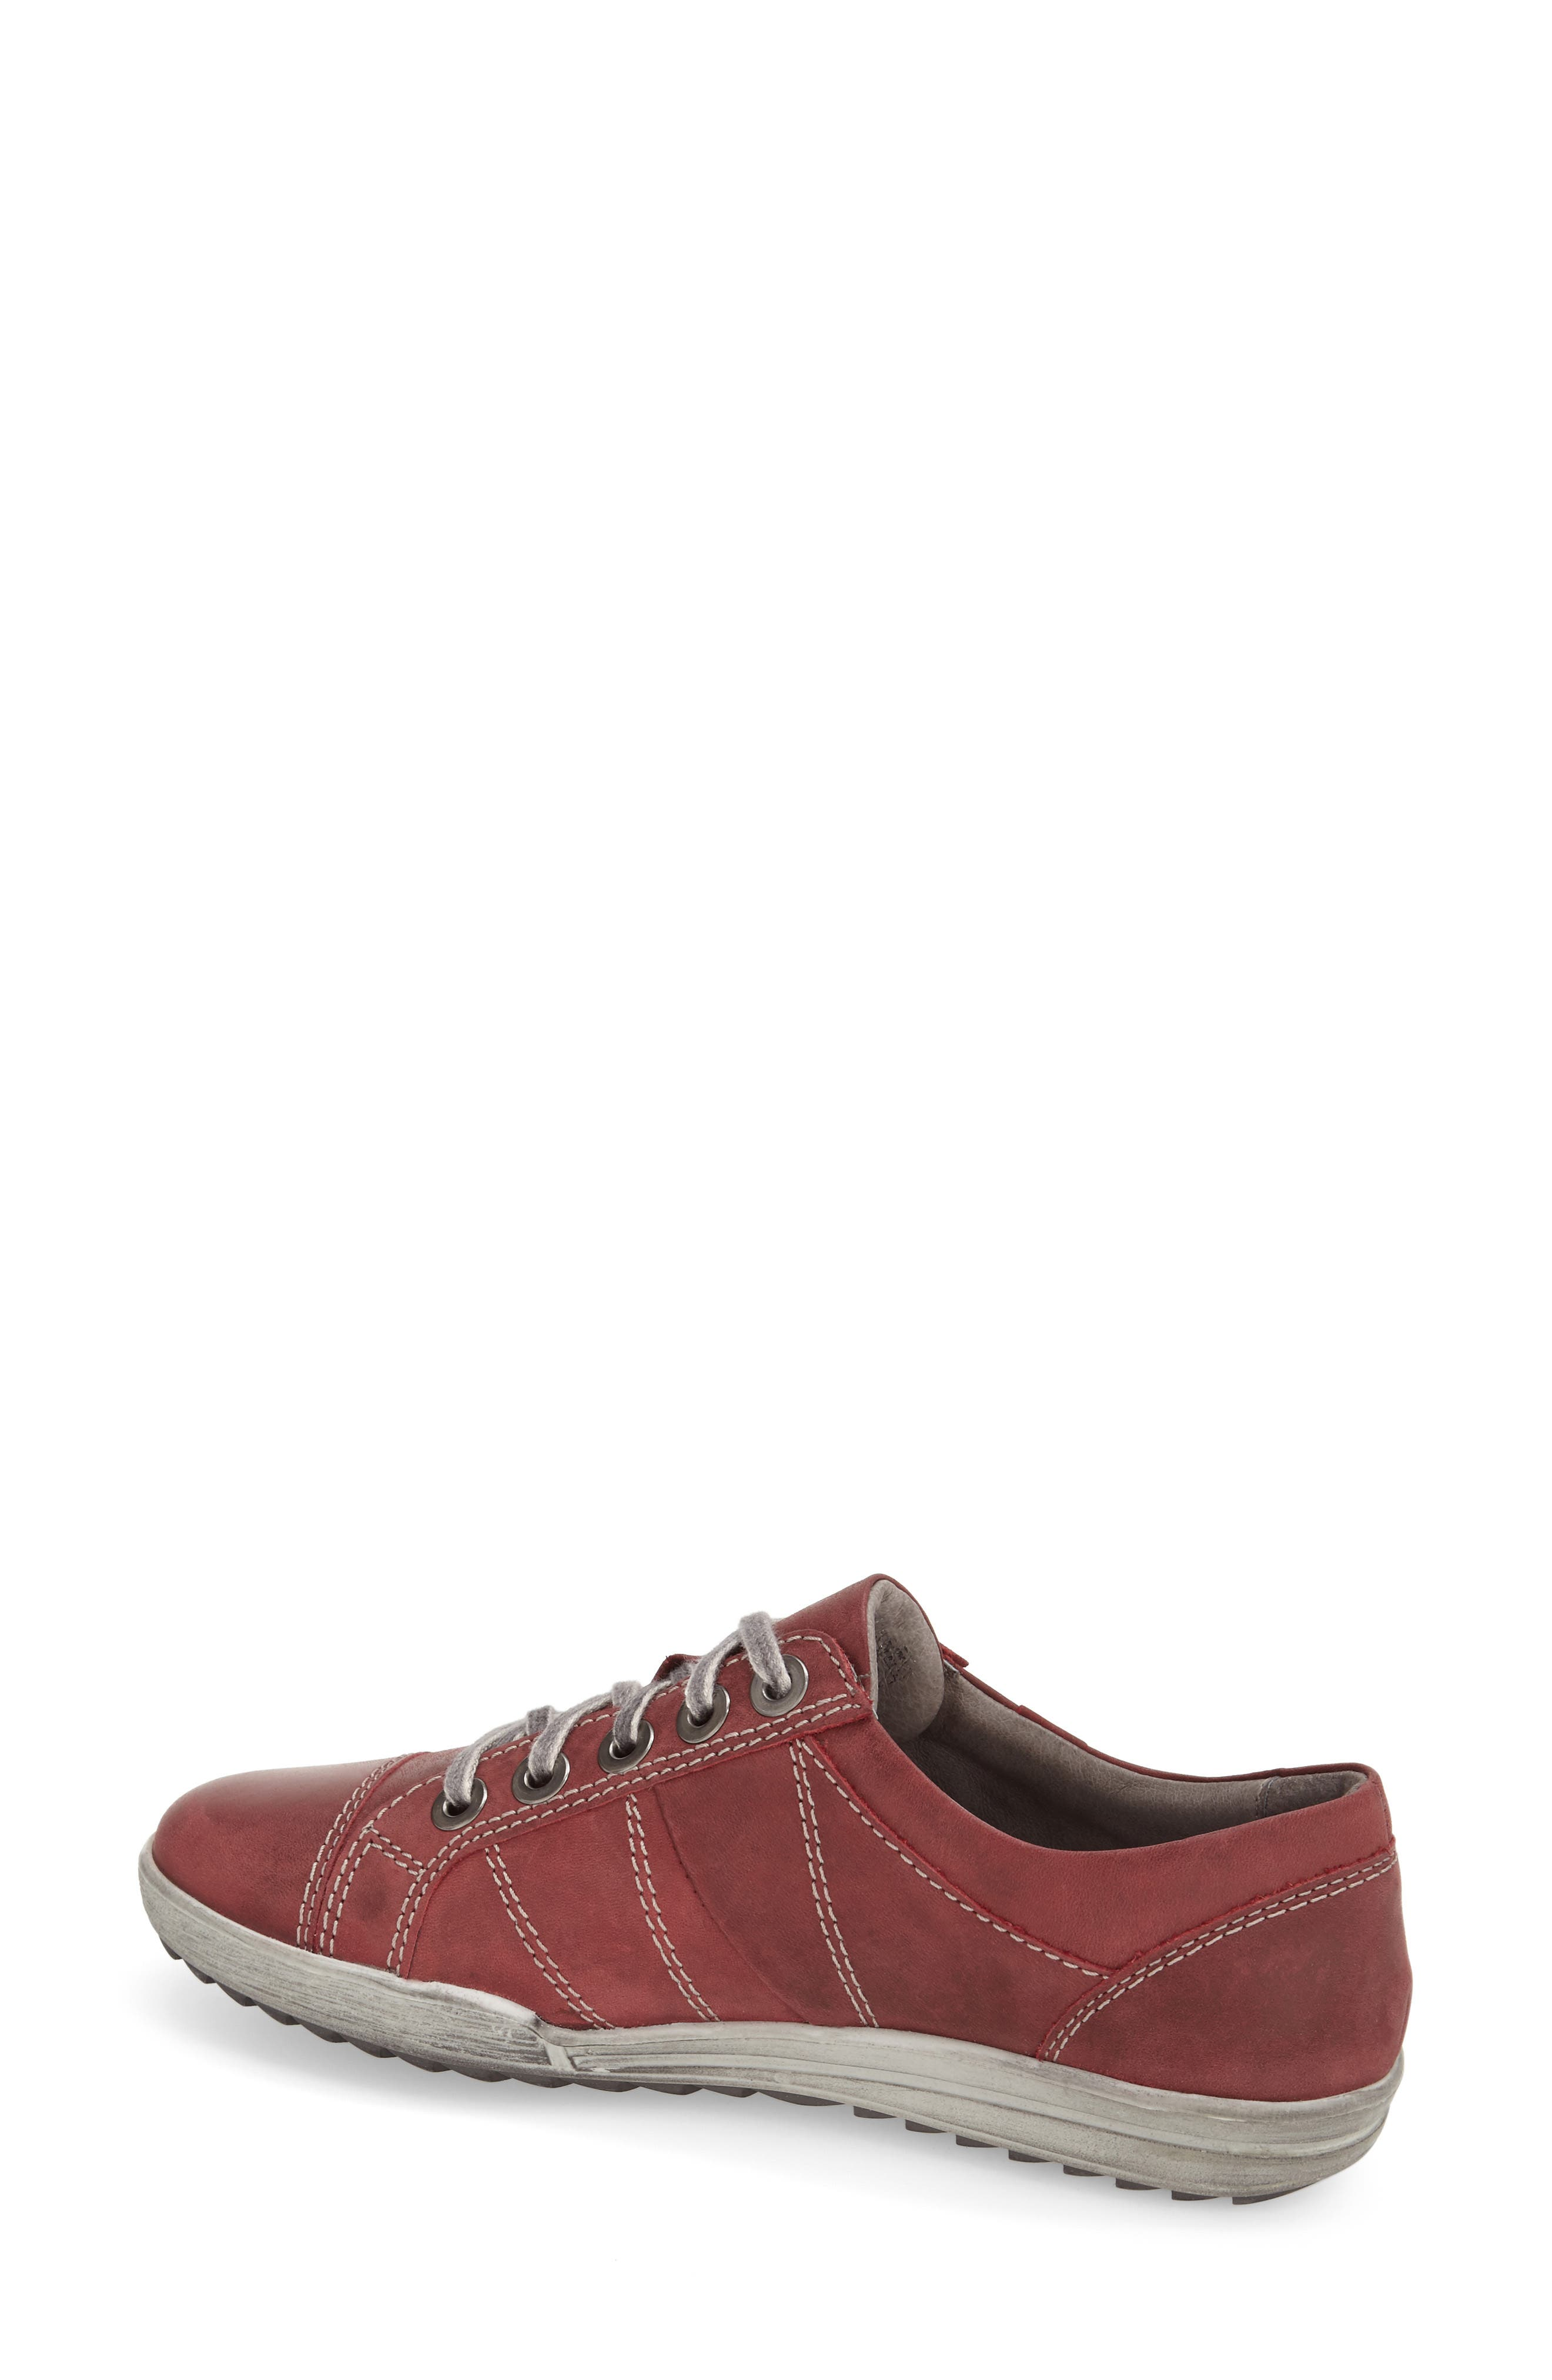 'Dany 05' Leather Sneaker,                             Alternate thumbnail 44, color,